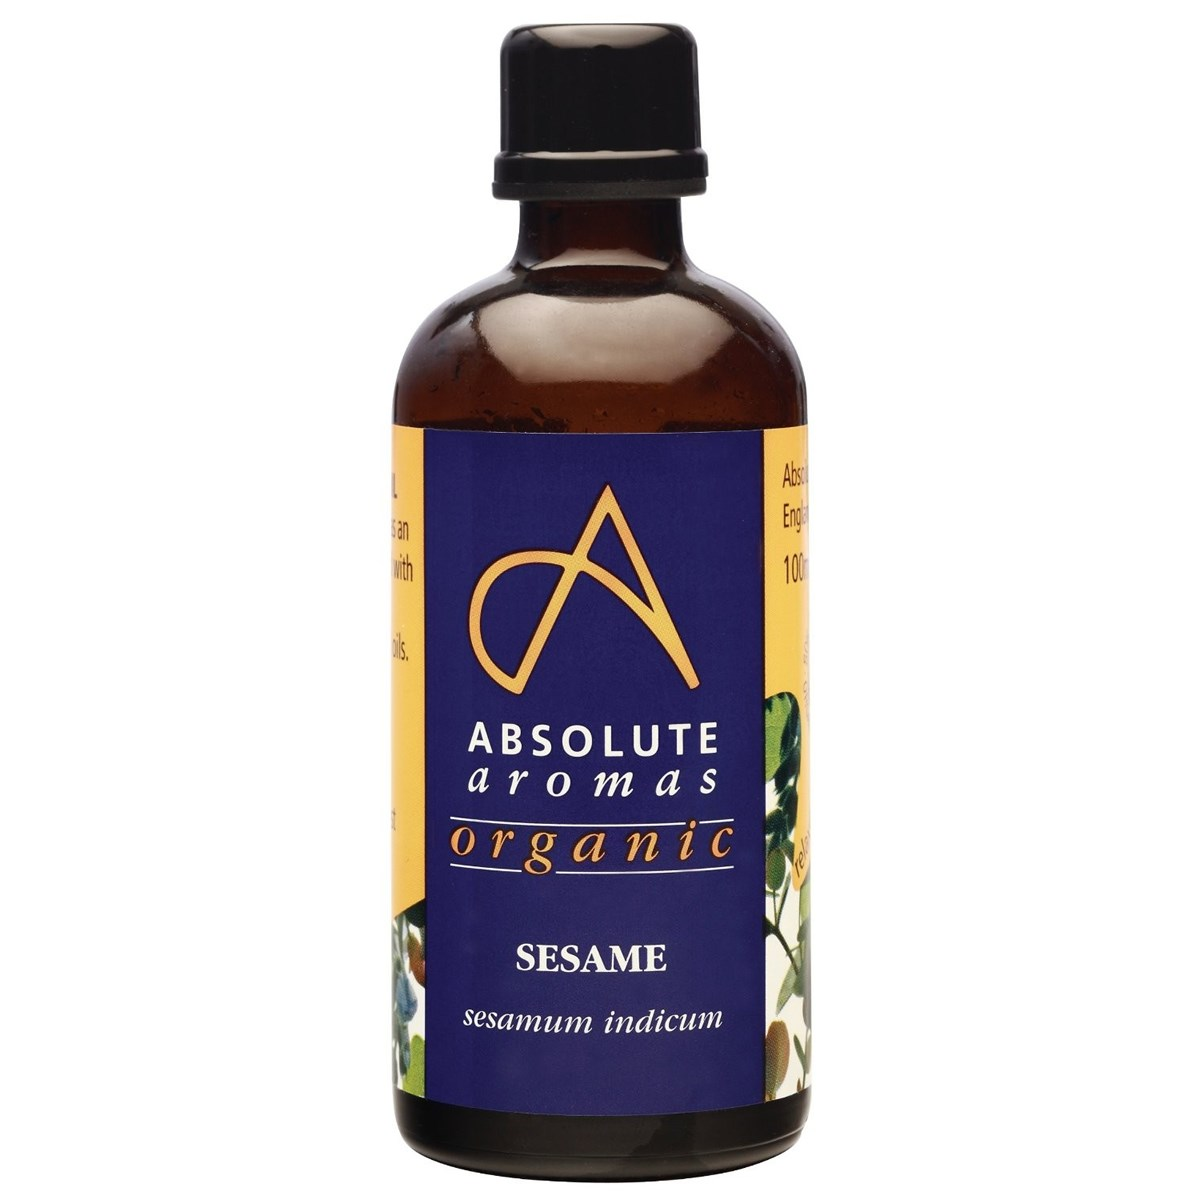 Absolute Aromas Organic Sesame Oil